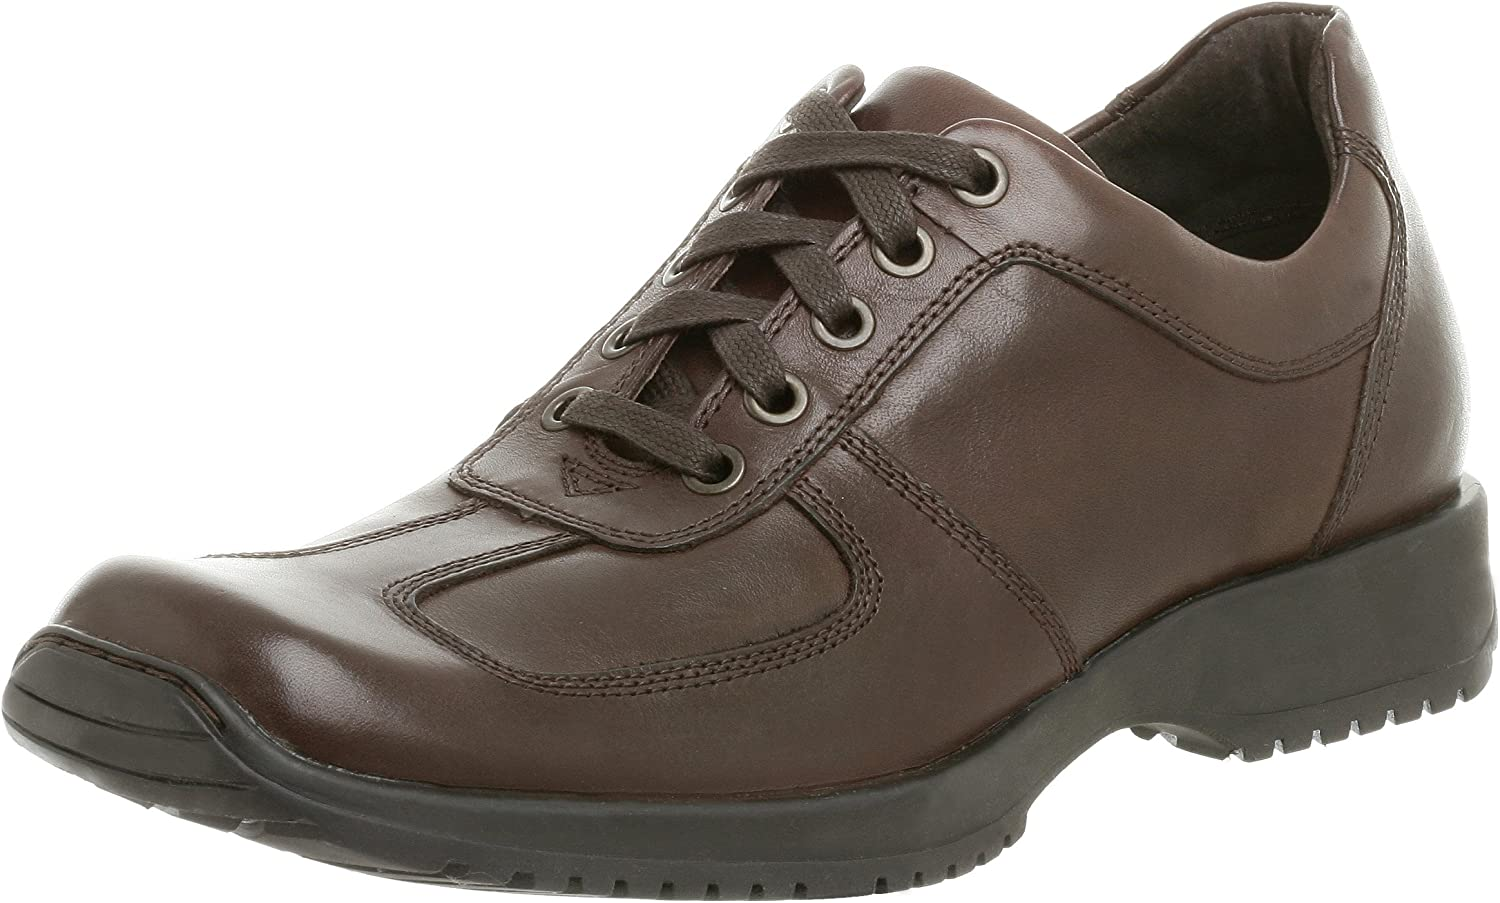 Kenneth Cole Reaction Men's Getting Hot Oxford,Brown,10.5 M